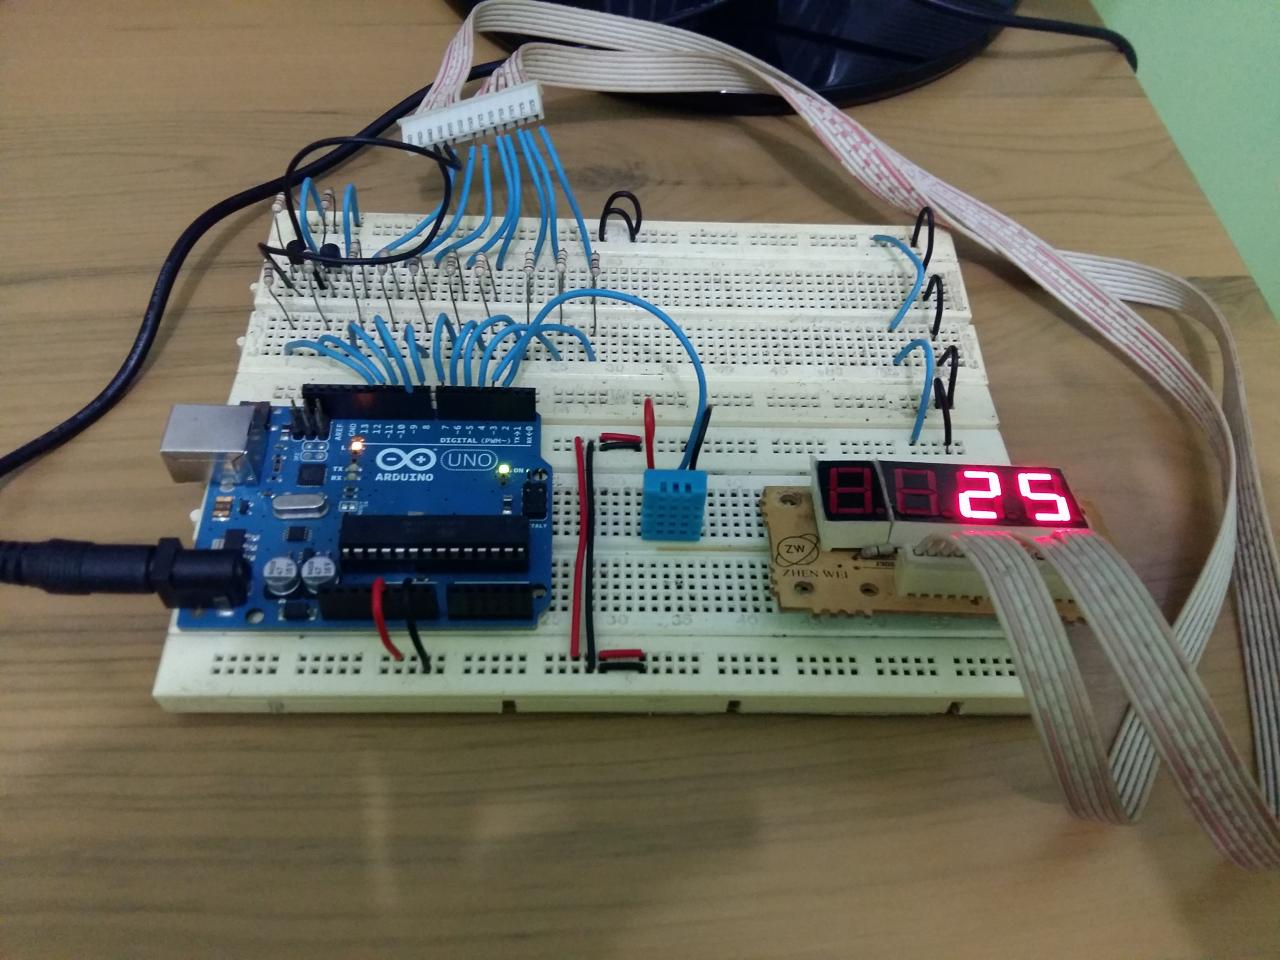 Display Temperature using a Seven Segment LED, an Arduino and a